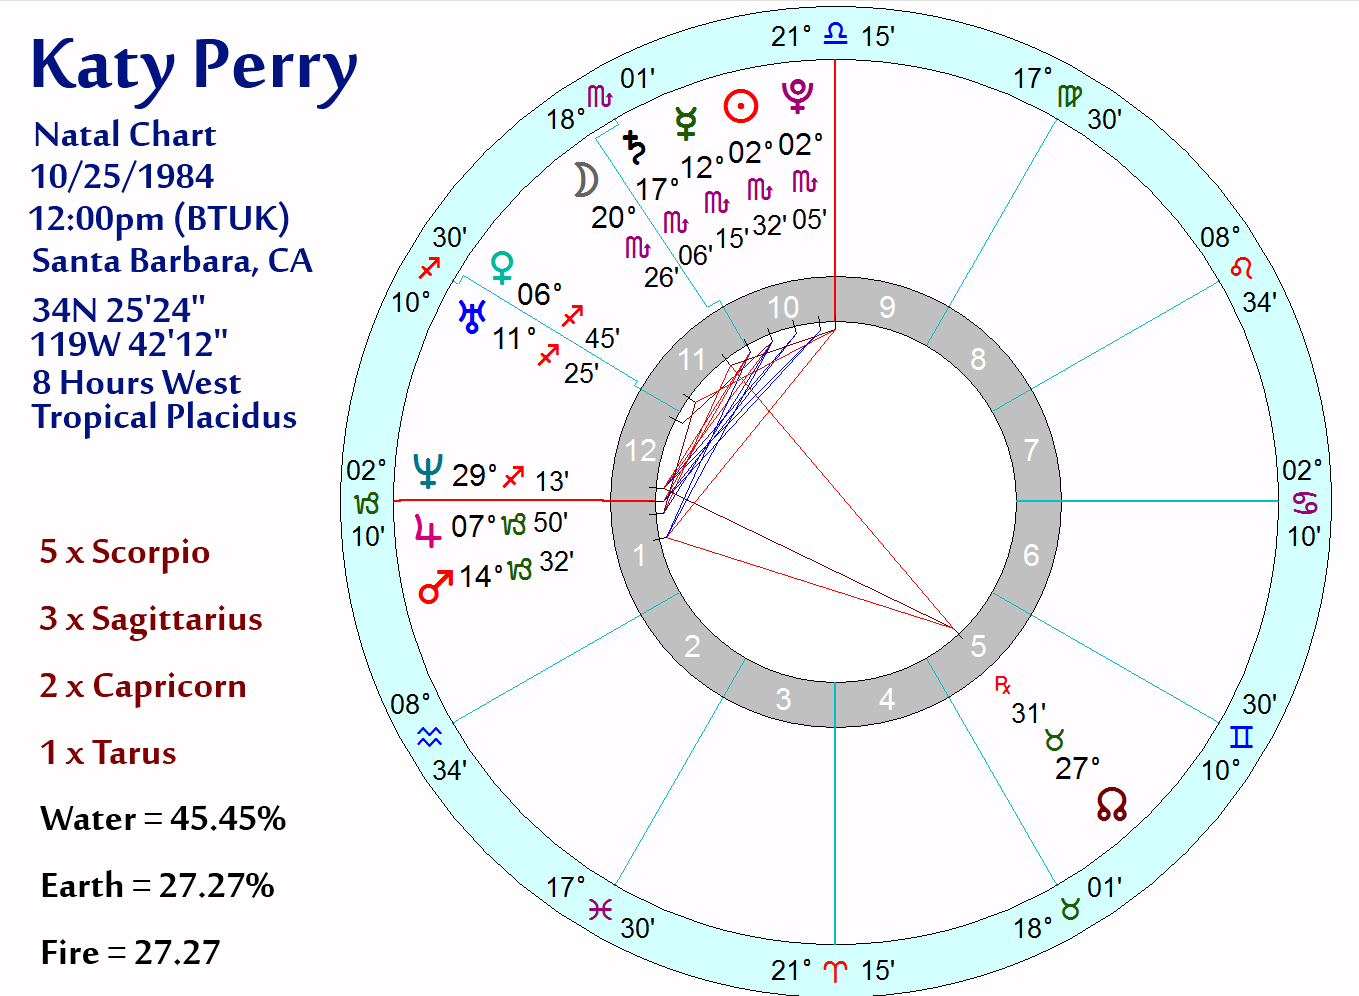 Logicaloptimizer august 2010 dear friends it would appear that i have made a dreadful and catastrophic mistake katy perry is no capricorn the mistake is totally understandable nvjuhfo Images